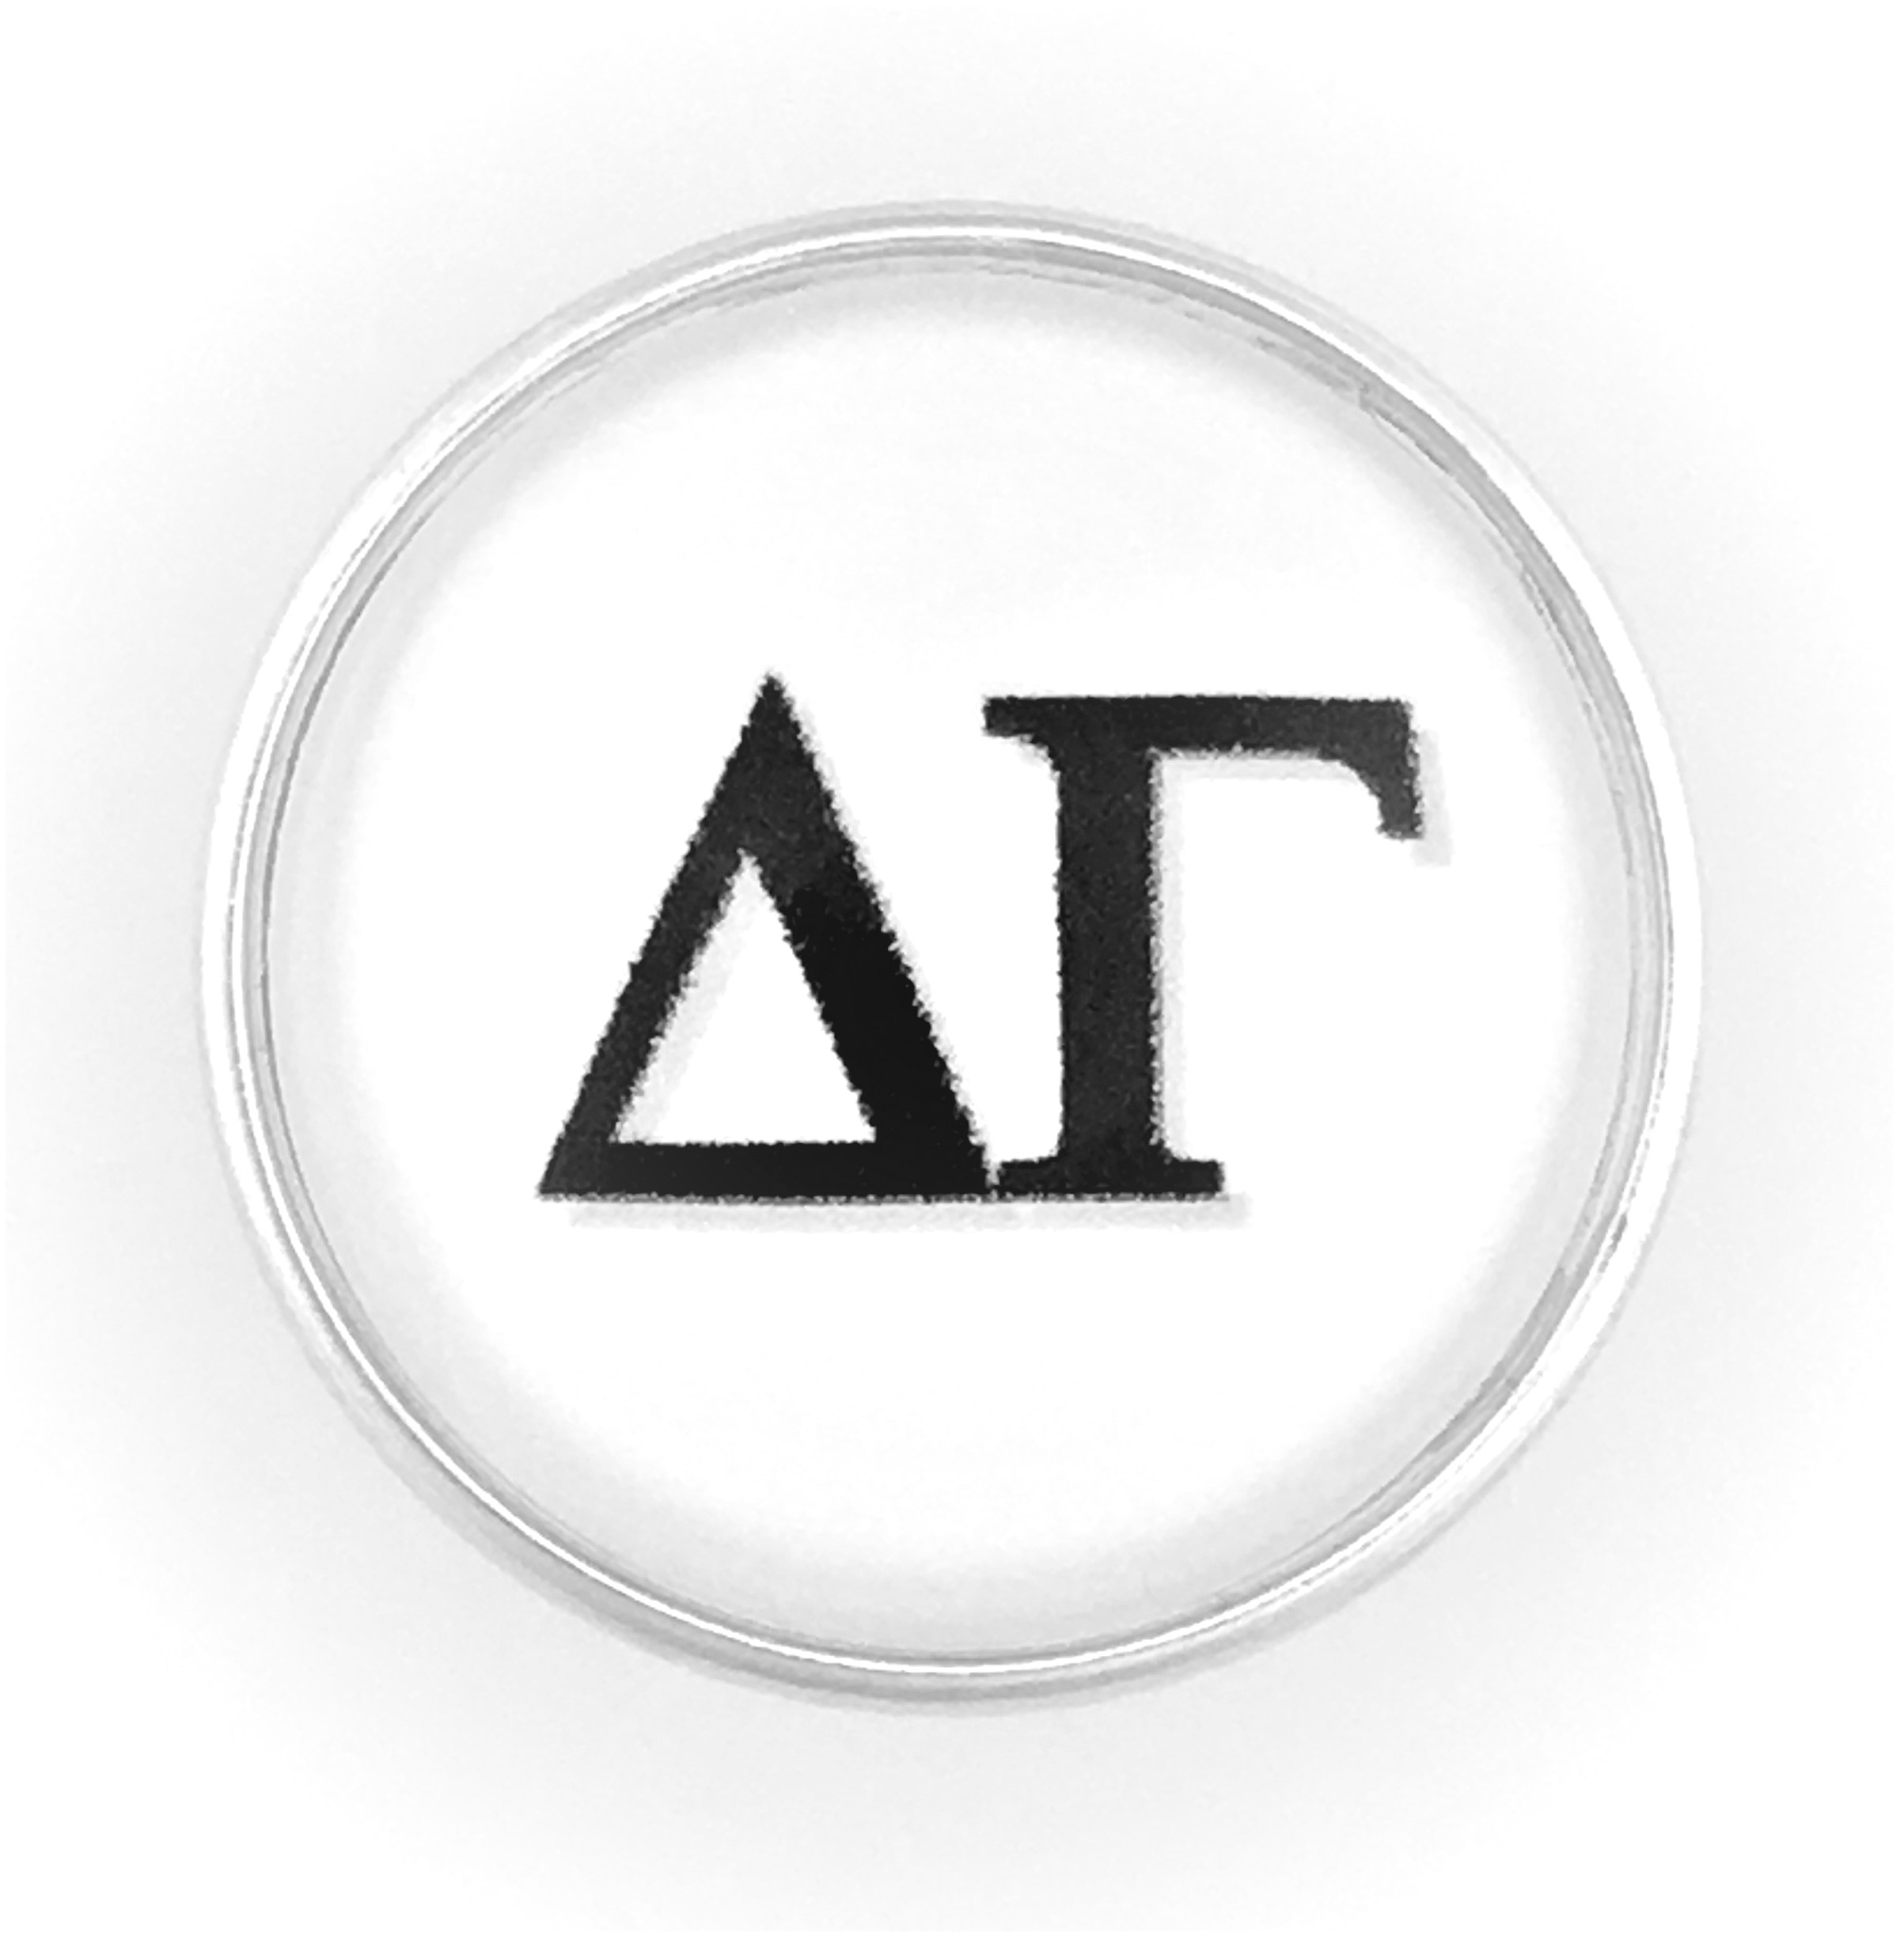 Sororities and fraternities archives elle victoria jewelry fashion snaps button delta gamma buycottarizona Gallery